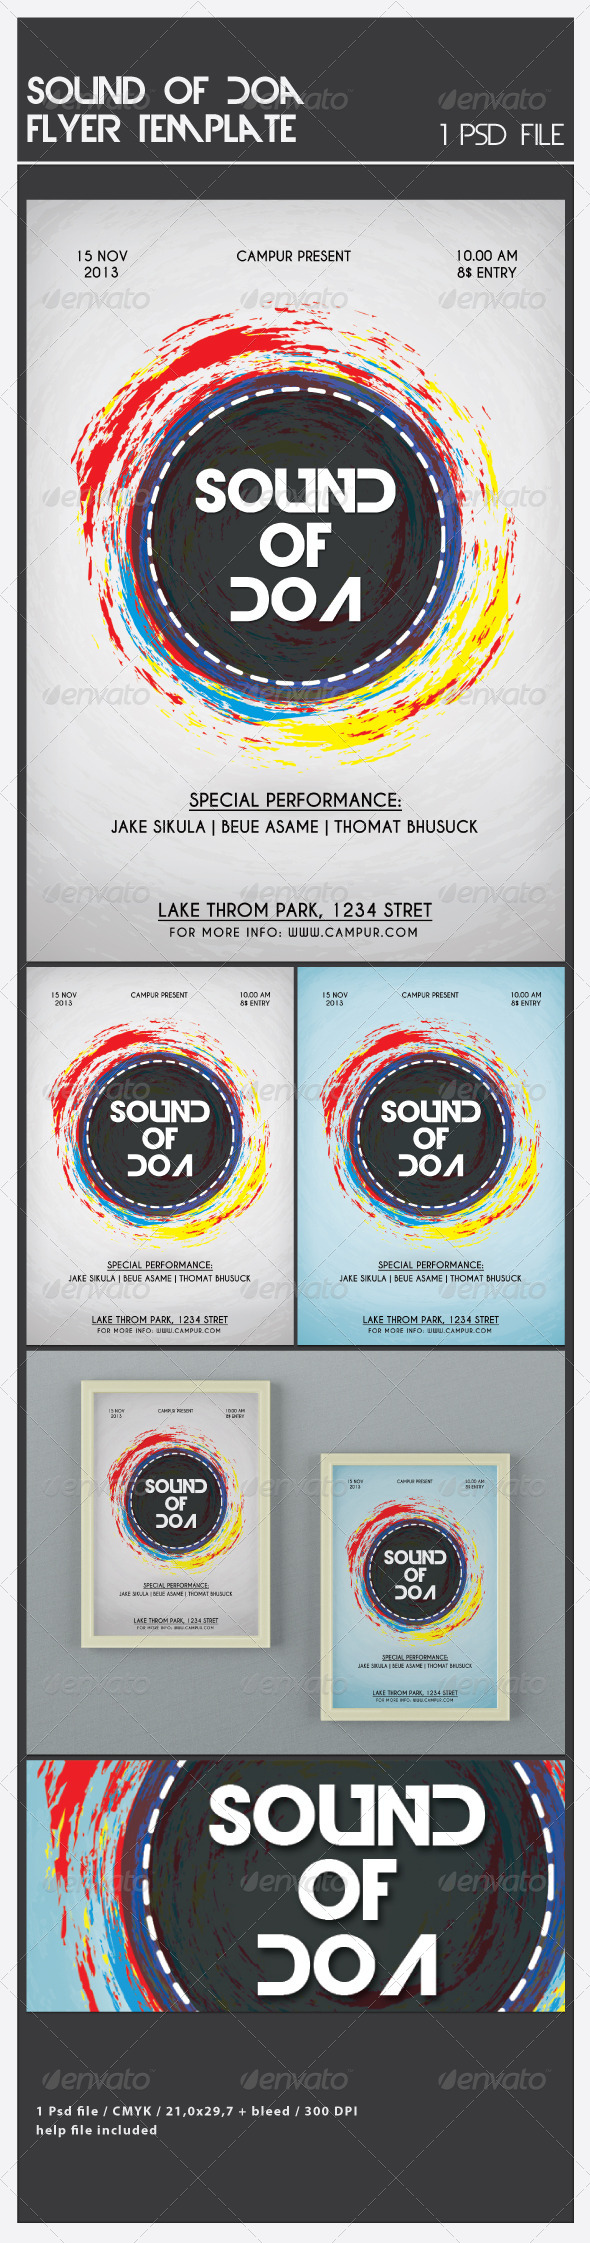 Sound of Doa Flyer Template - Flyers Print Templates